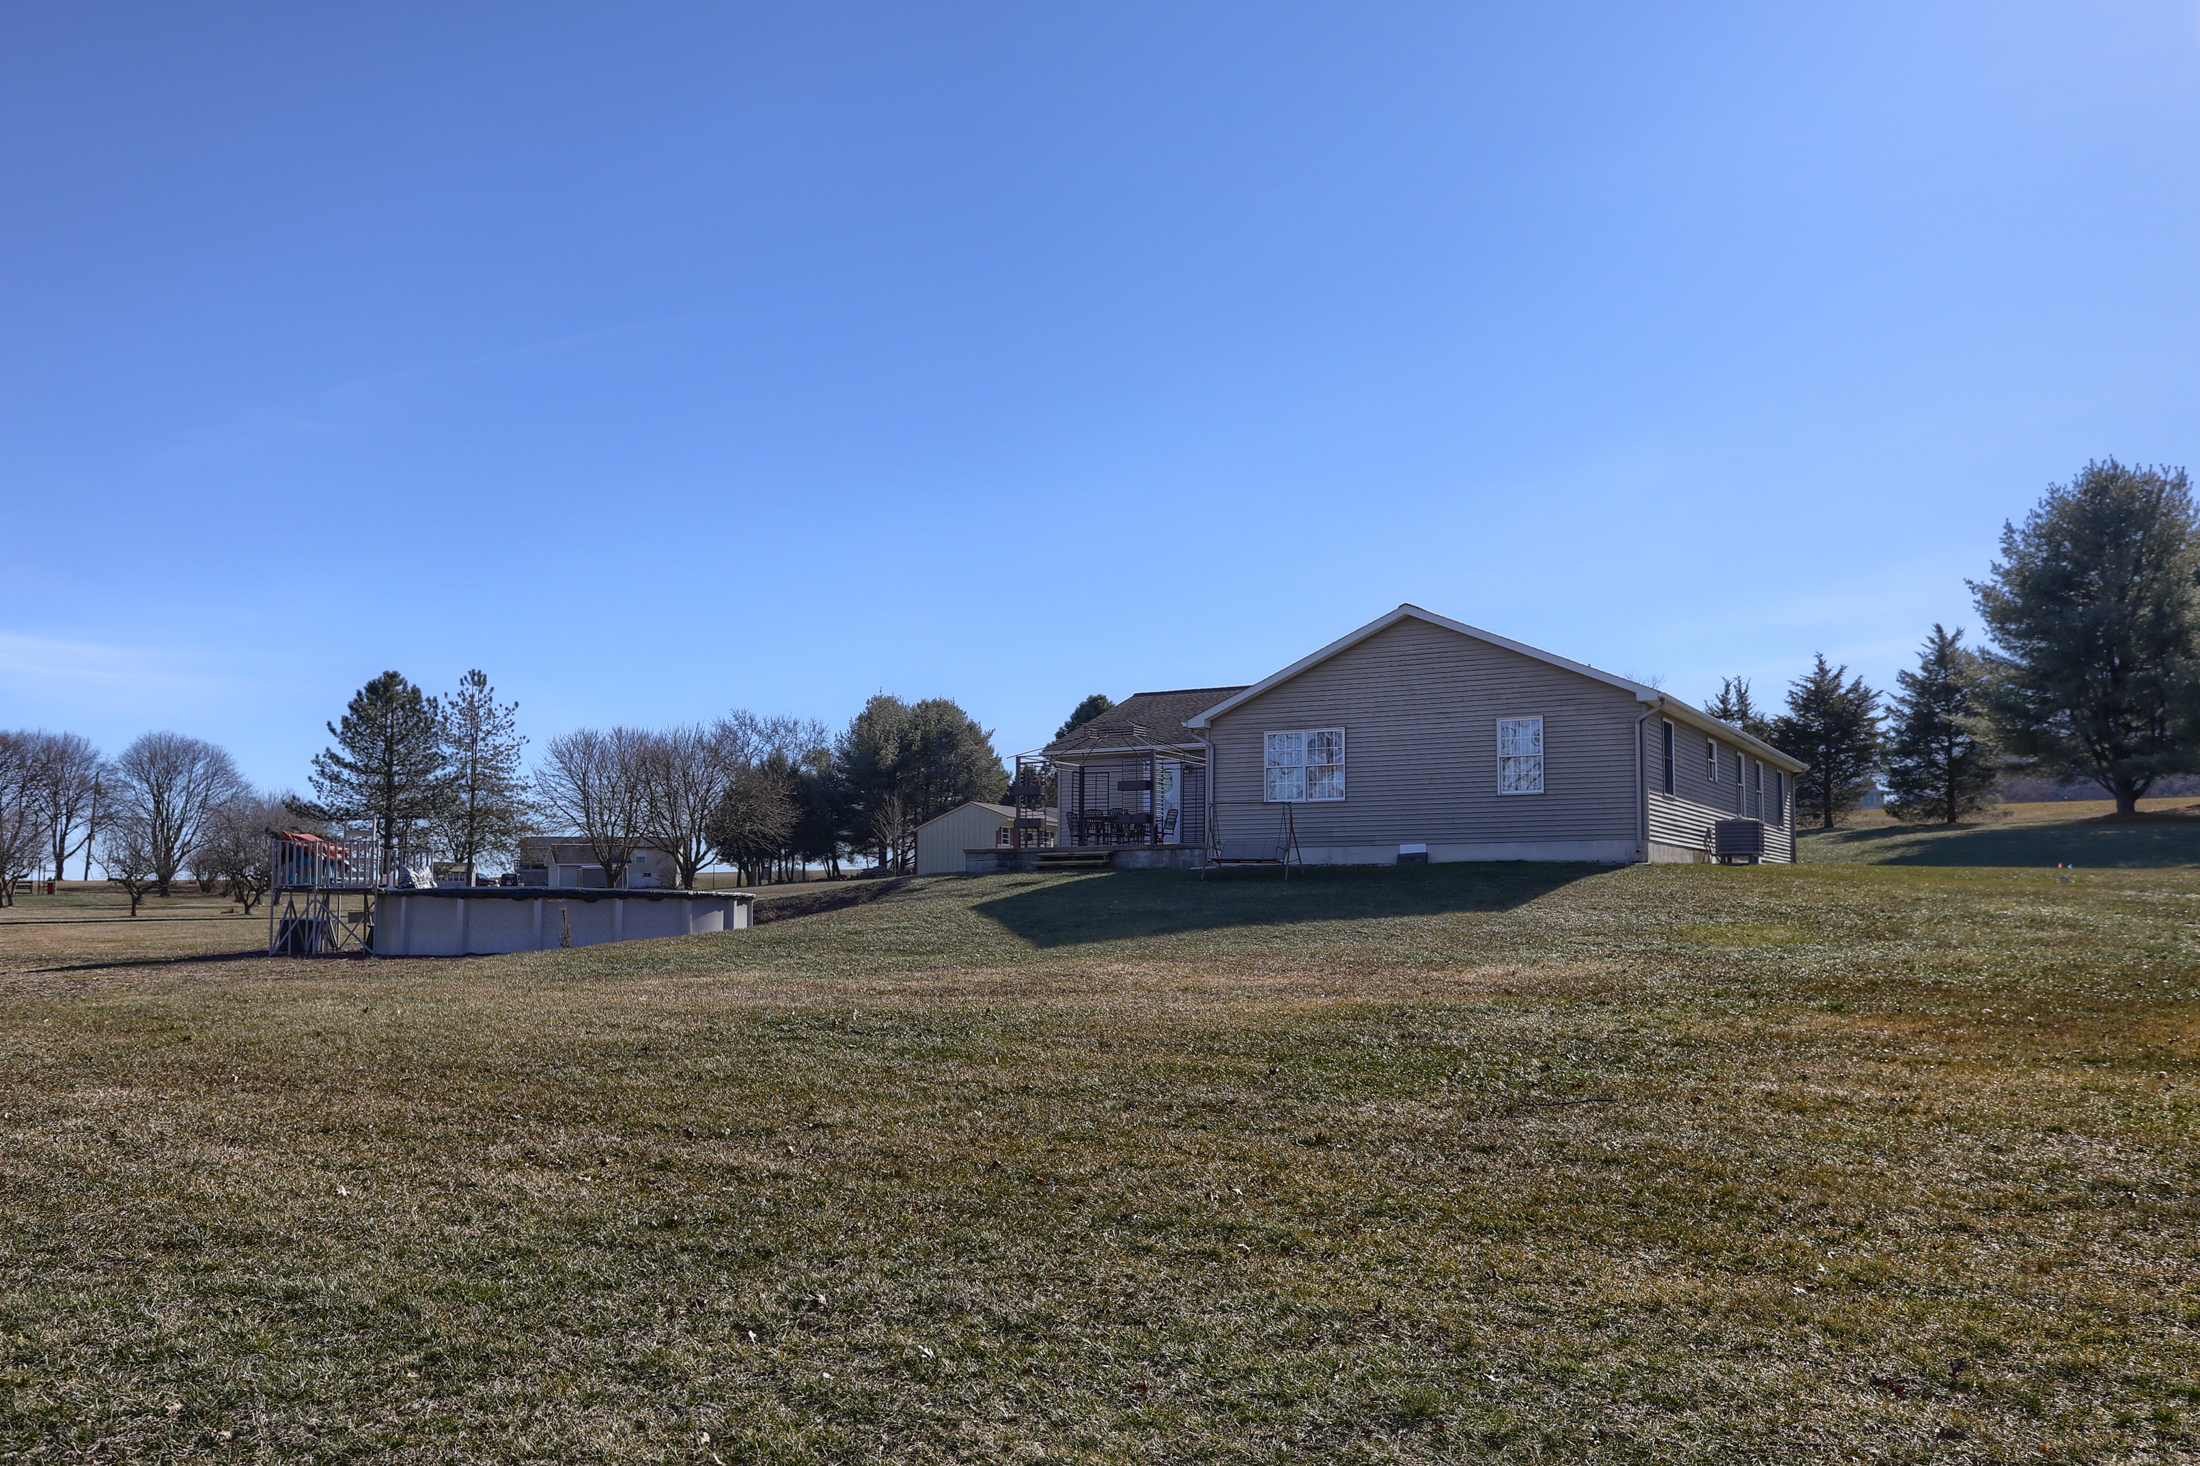 26 W. Strack Drive - yard 3 (ELCO home with Land)